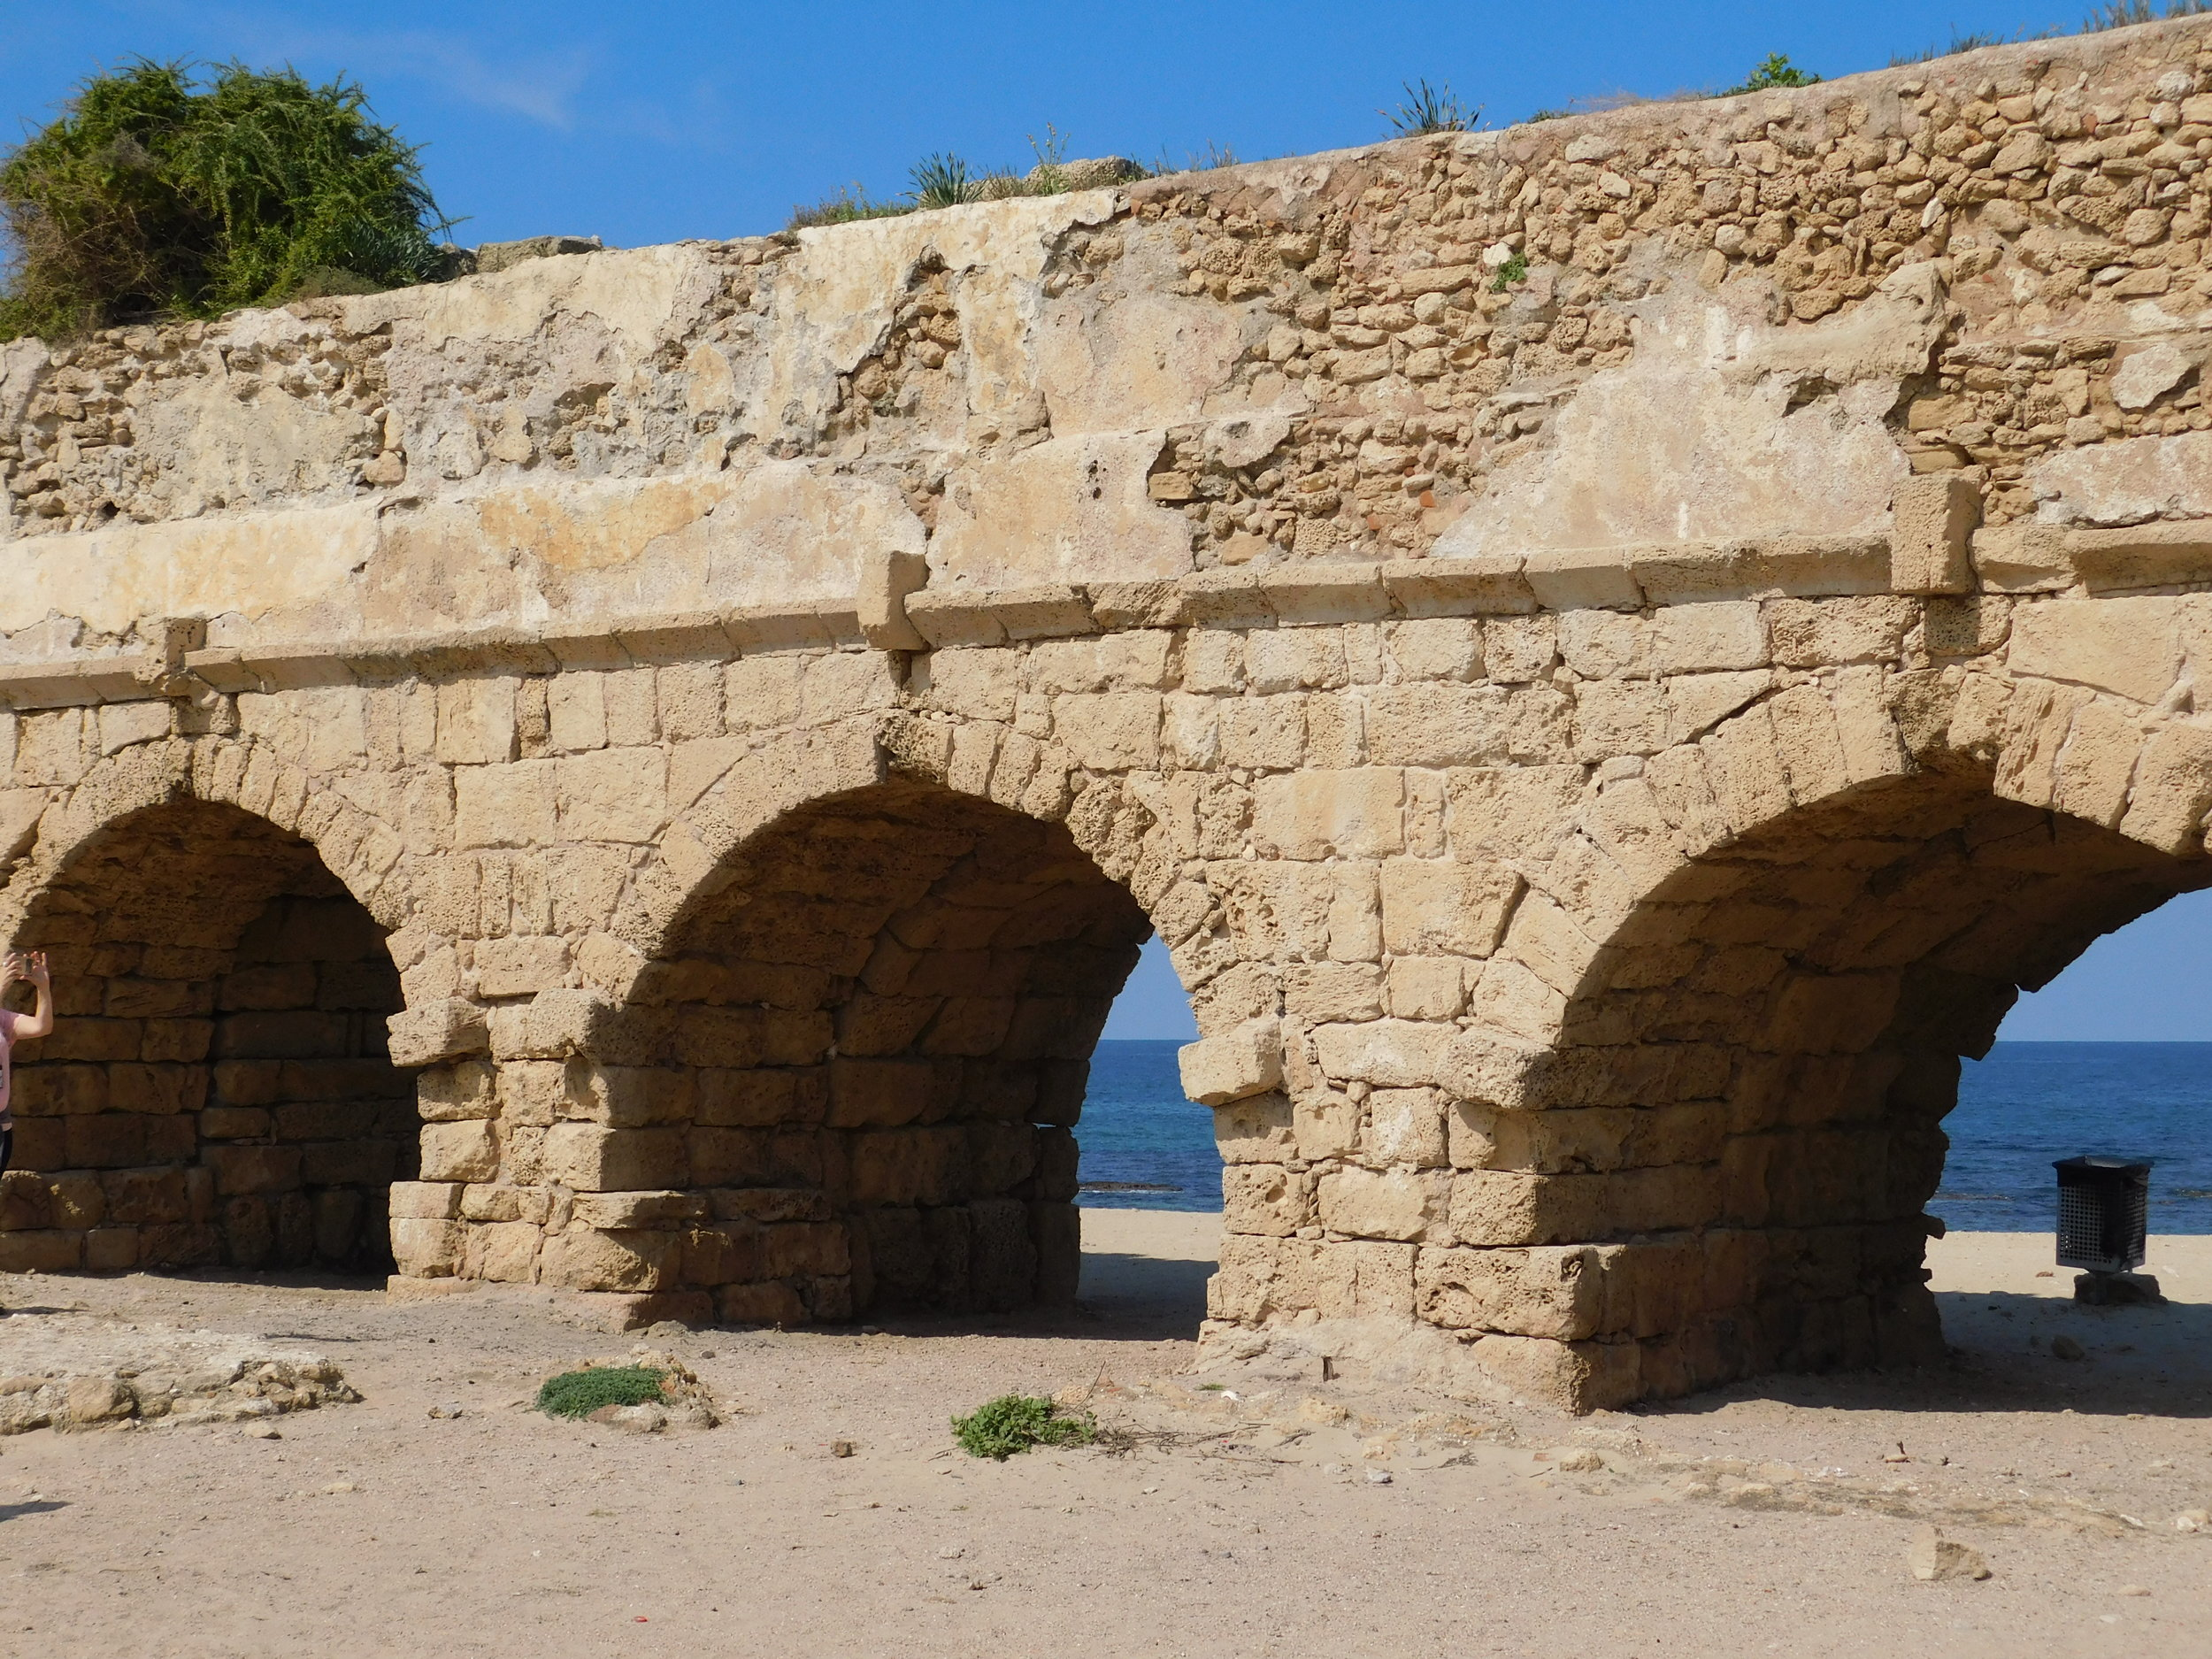 Aquaduct built by Herod